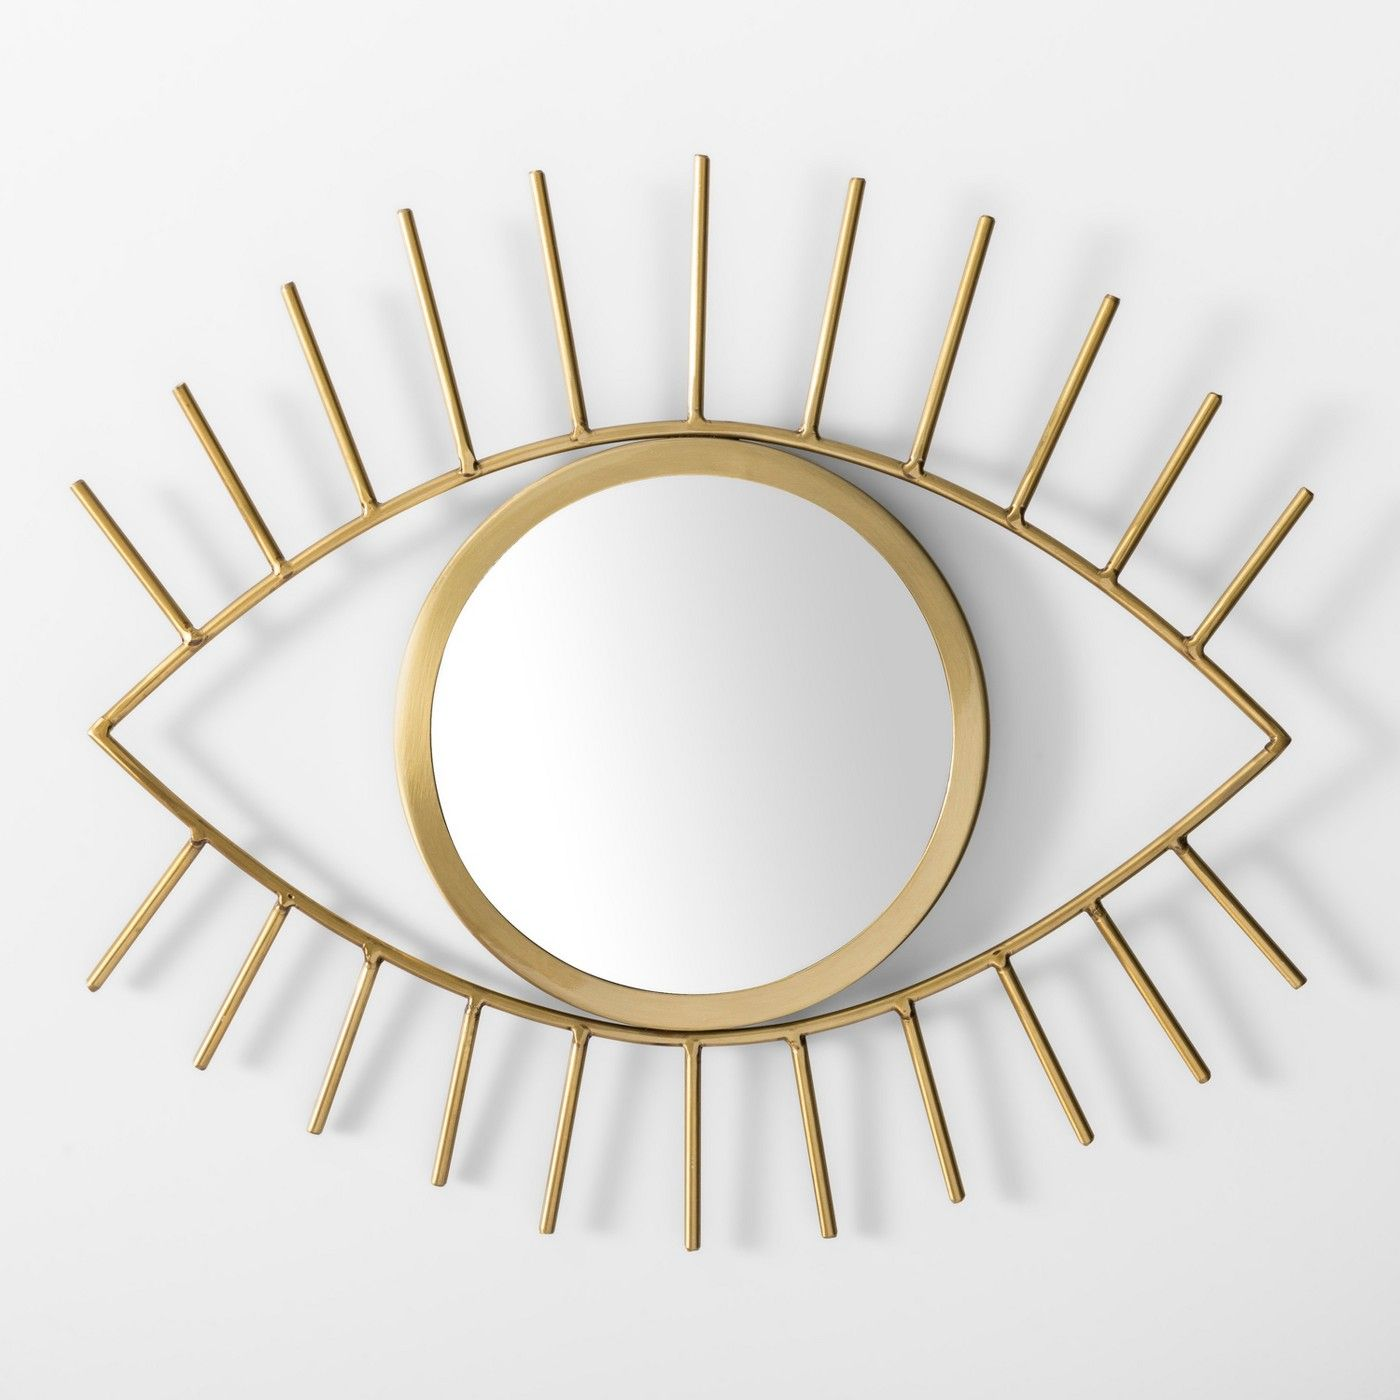 Target Eye Decorative Mirror Wall Sculpture Gold Room Essentials Mirror Wall Decor Mirror Decor Eye Decor